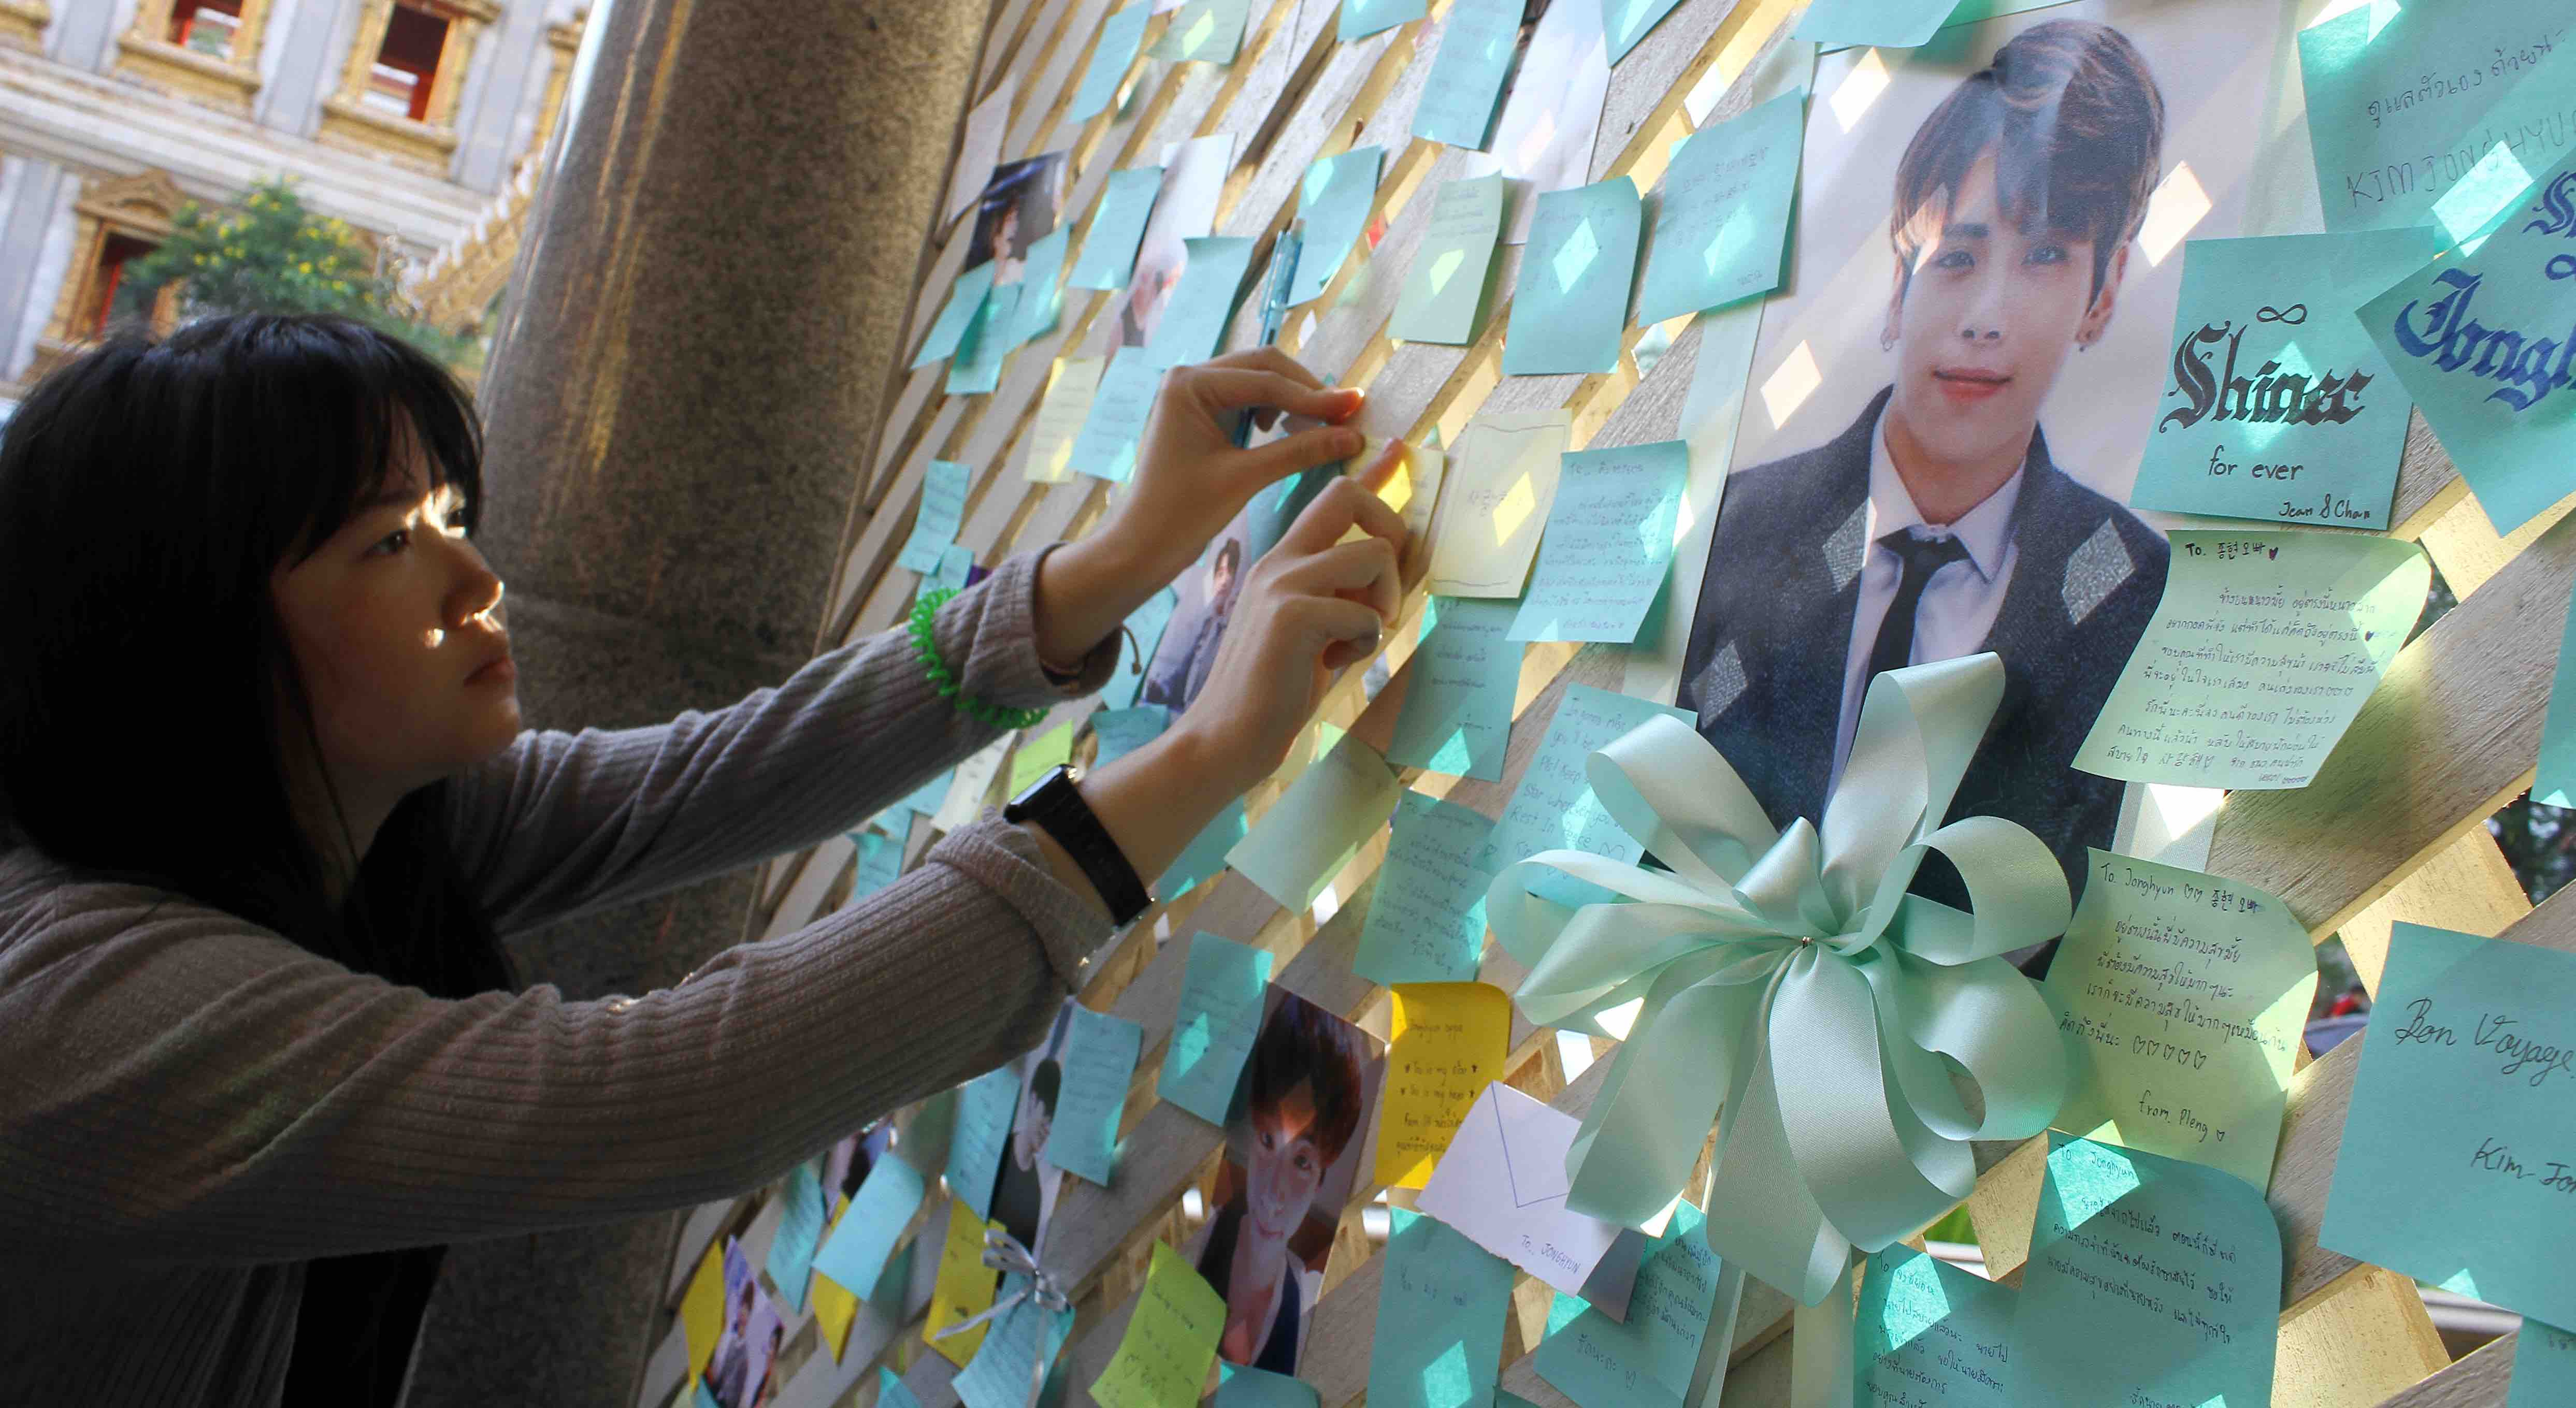 A memorial in Thailand to the late South Korean singer Kim Jonghyun (Photo: Vichan Poti/Getty)